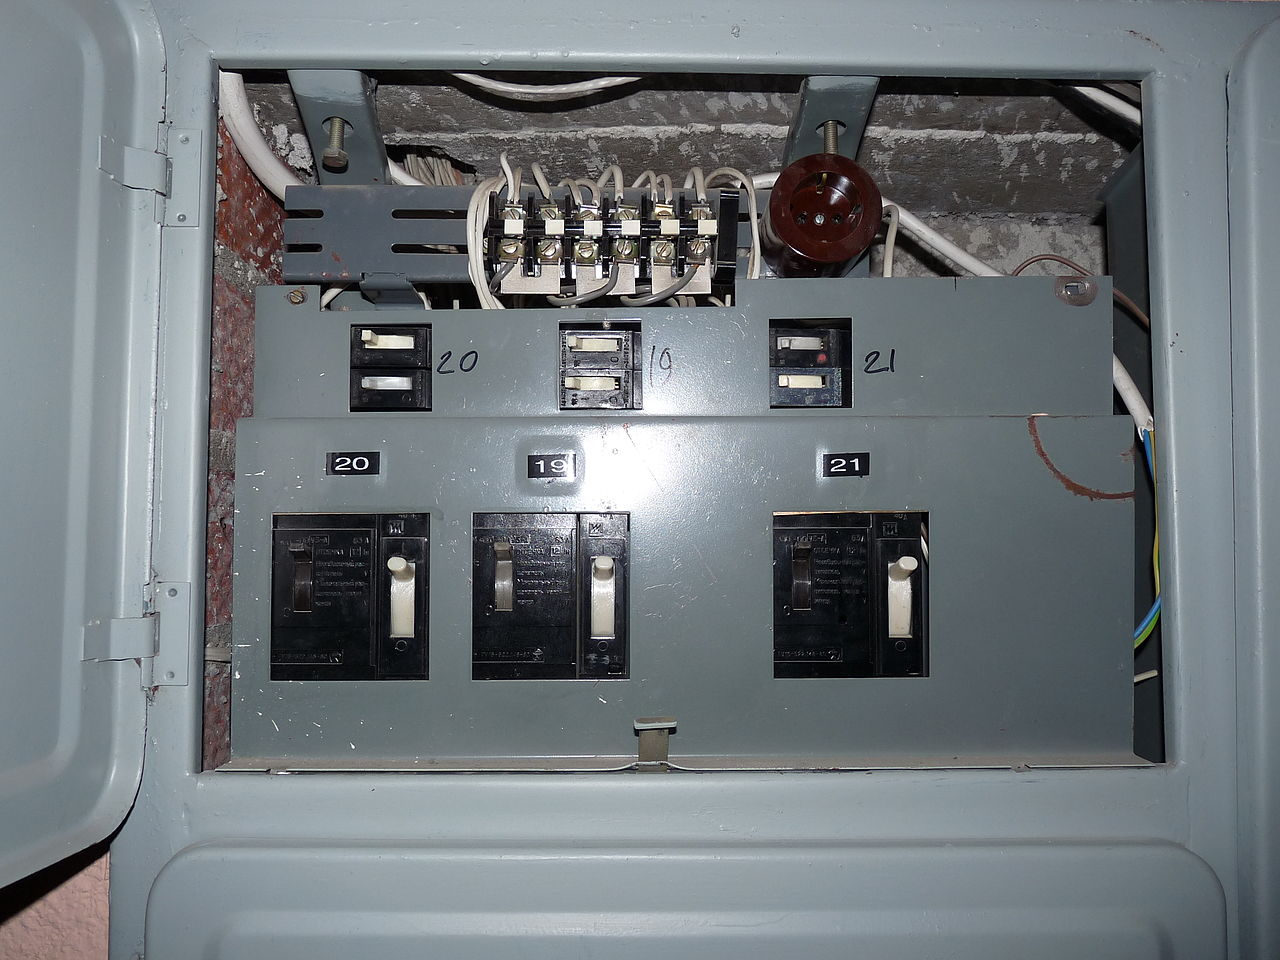 Circuit Breaker Vs Fuse Box Wiring Library Older Electrical Boxes Fileliikuri 16 Old Breakers In